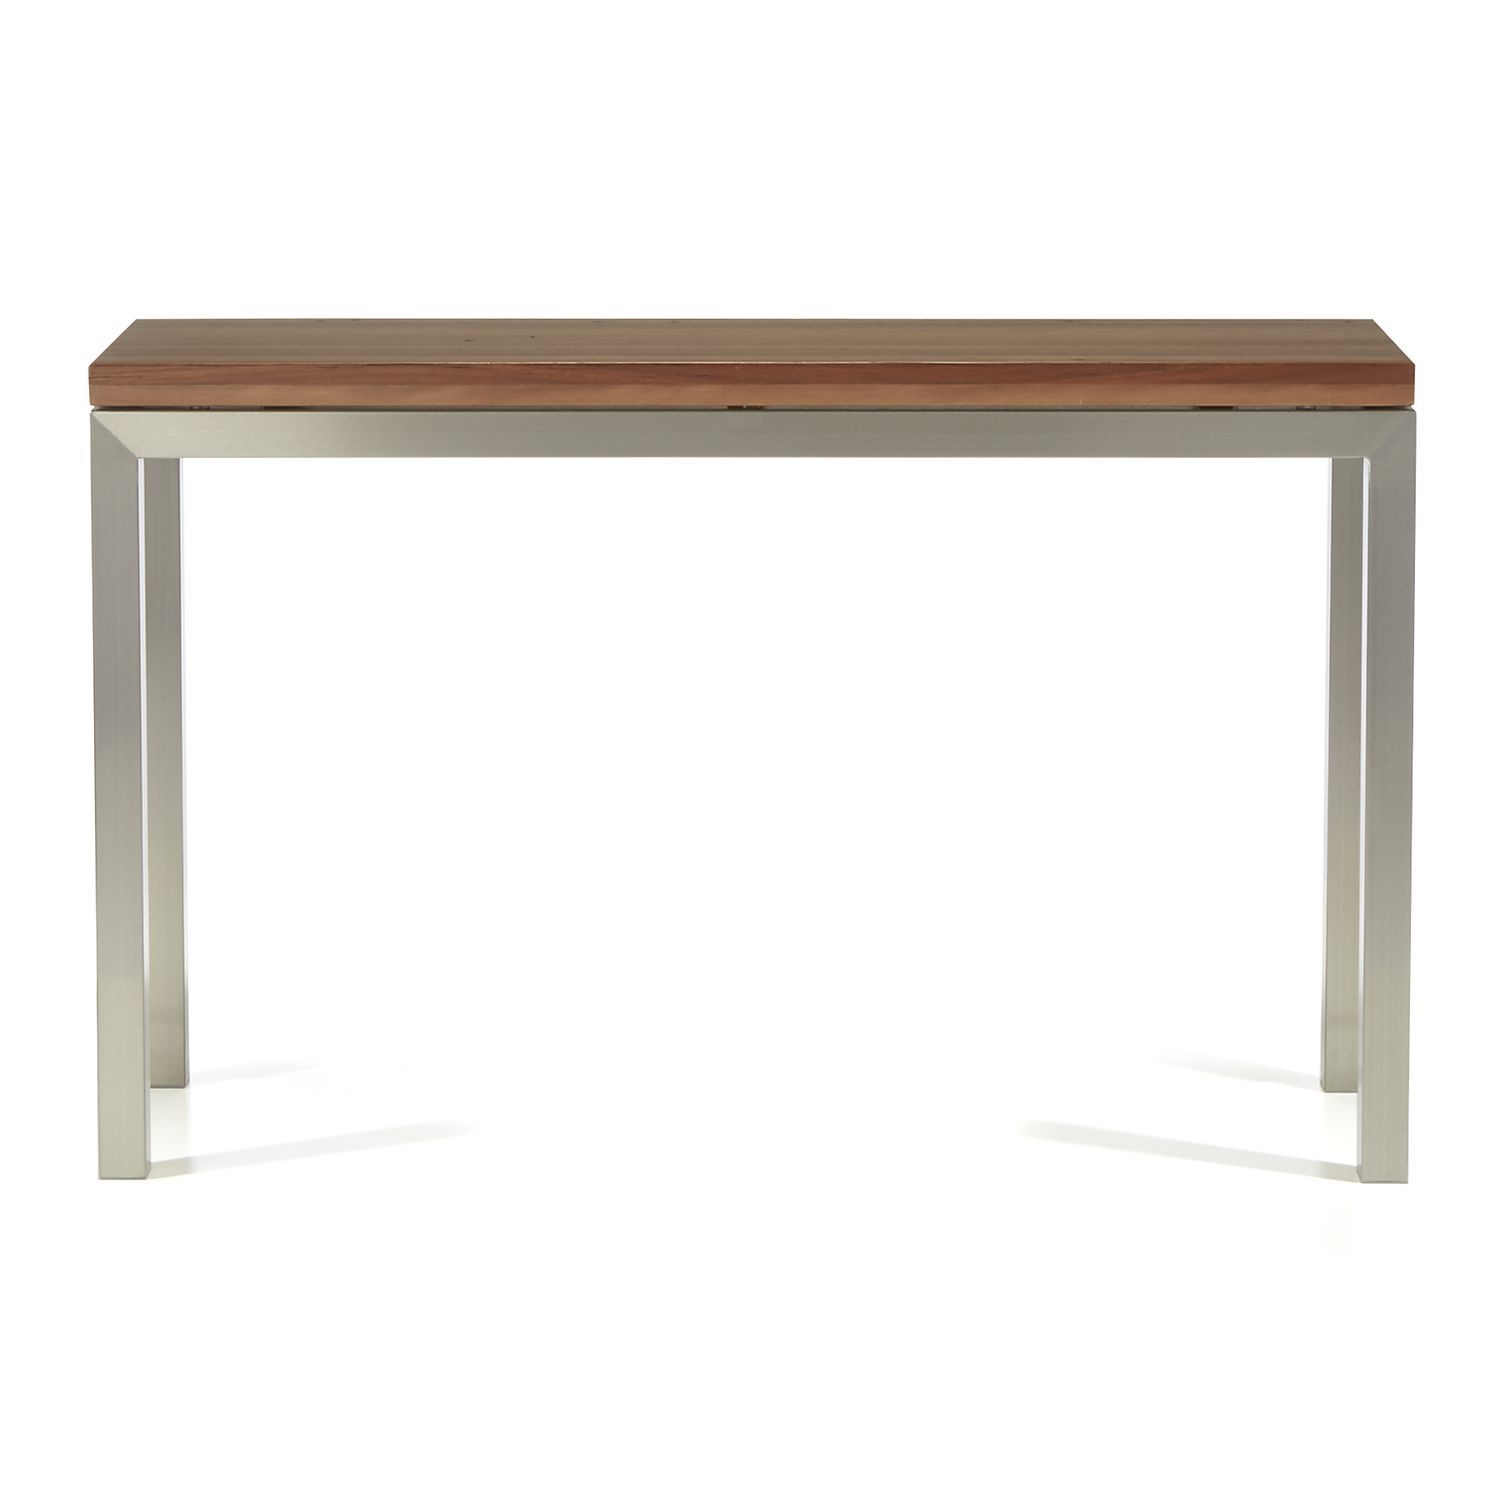 Parsons Reclaimed Wood Top/ Stainless Steel Base 48x16 Console Inside Parsons Concrete Top & Dark Steel Base 48x16 Console Tables (View 20 of 20)